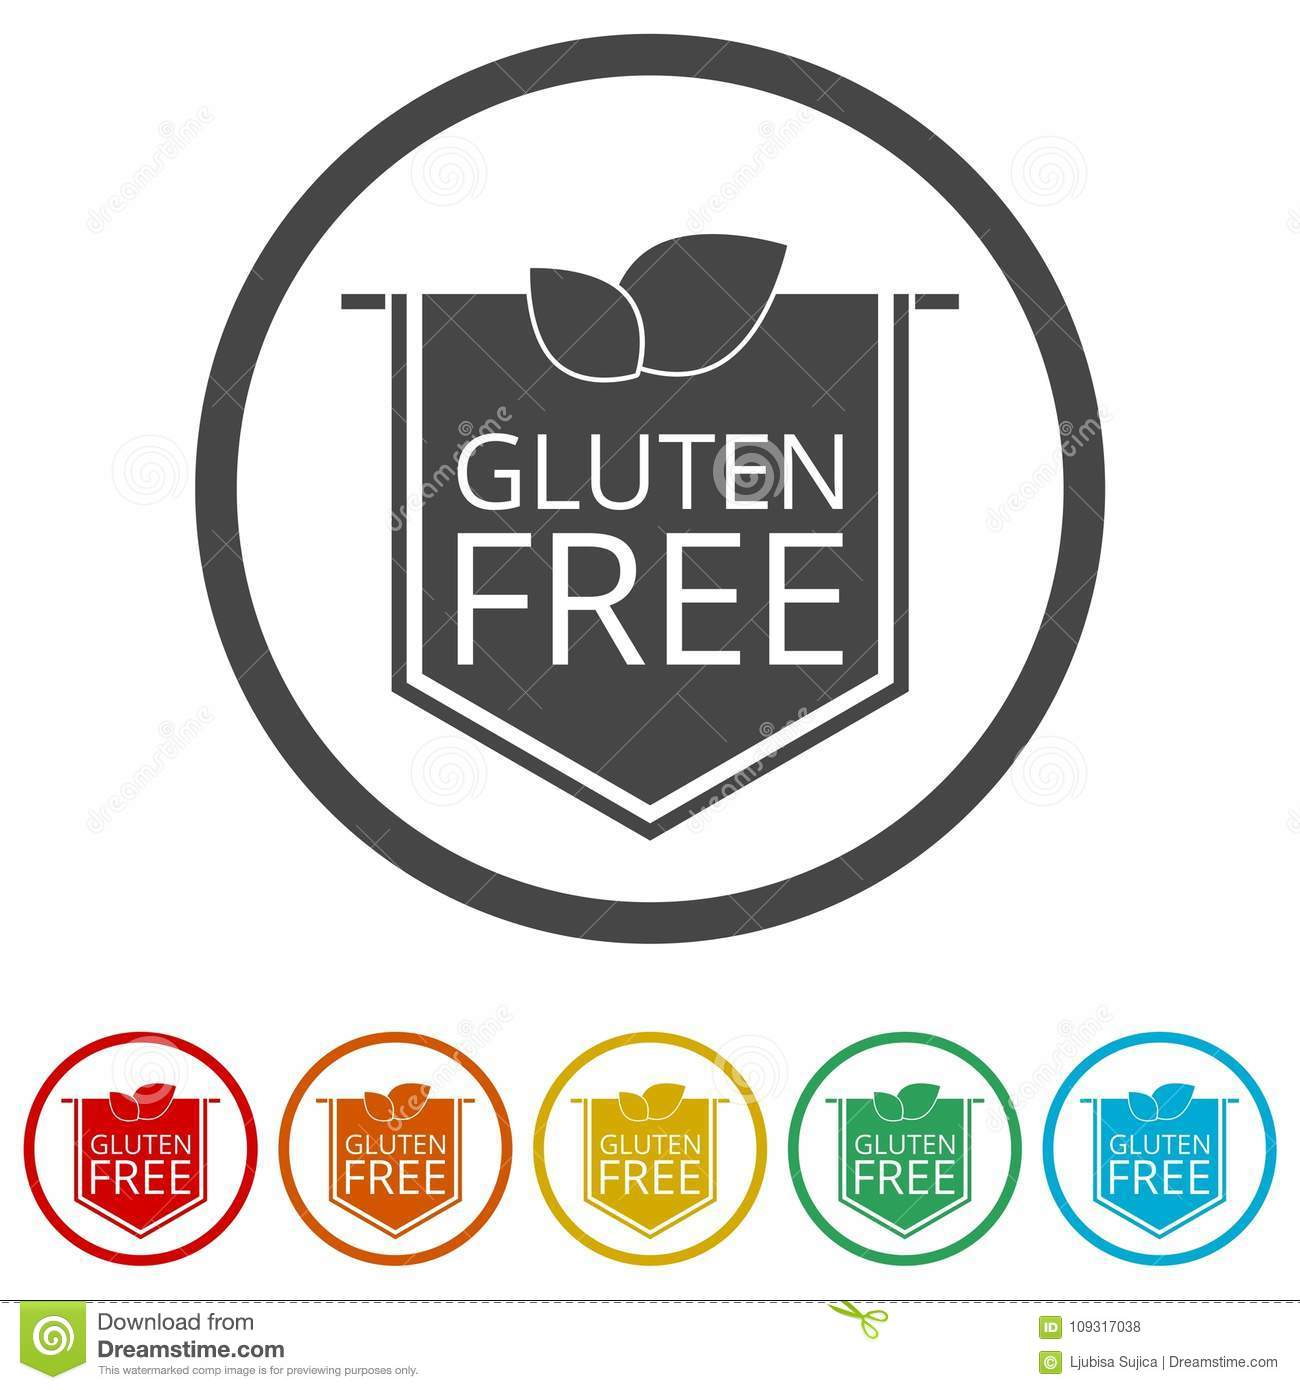 Gluten Free Icon, No Gluten / Gluten Free Food Label, 6 Colors